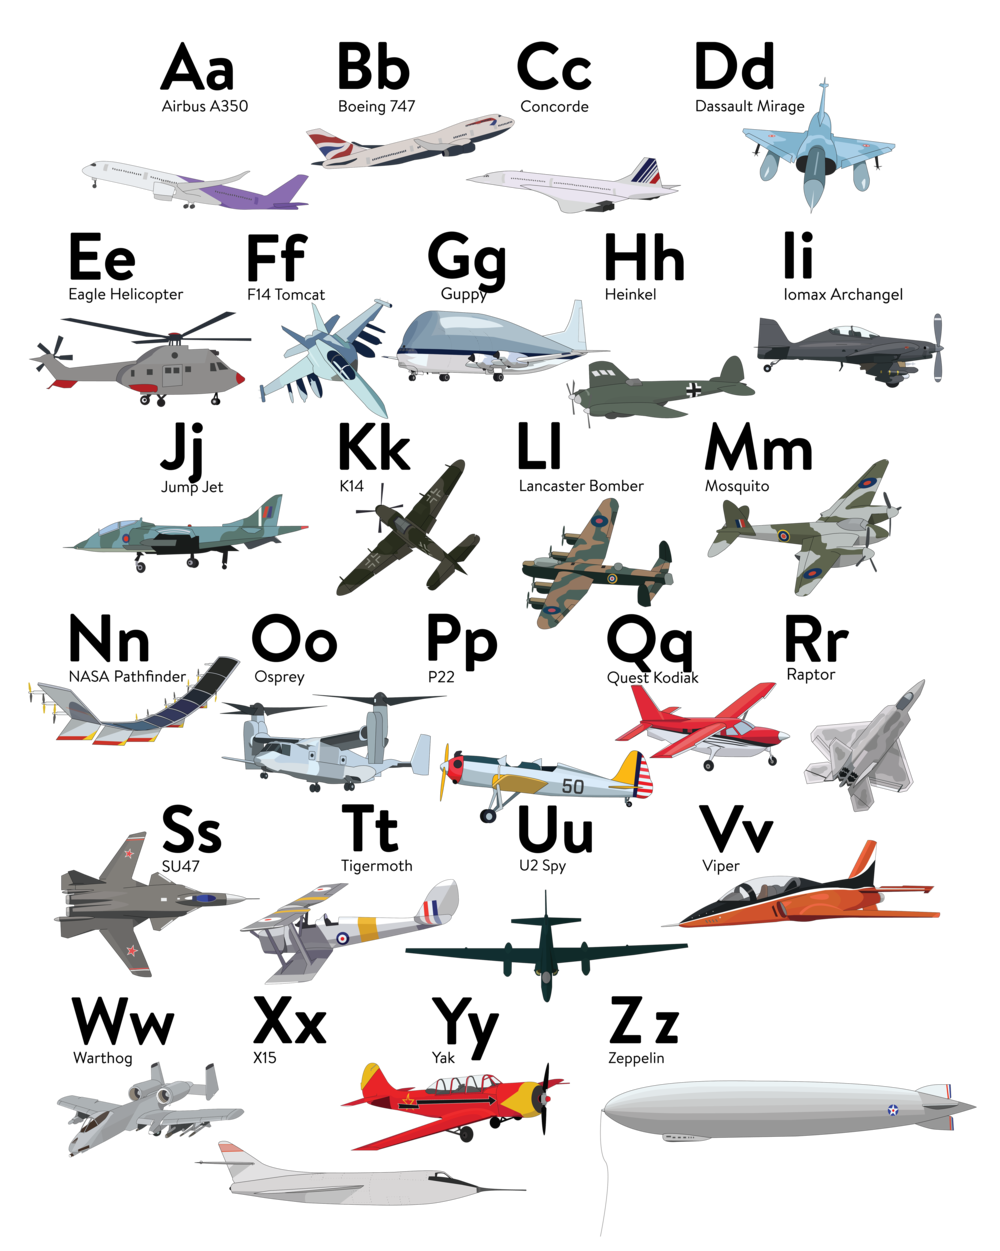 THE A-Z OF PLANES